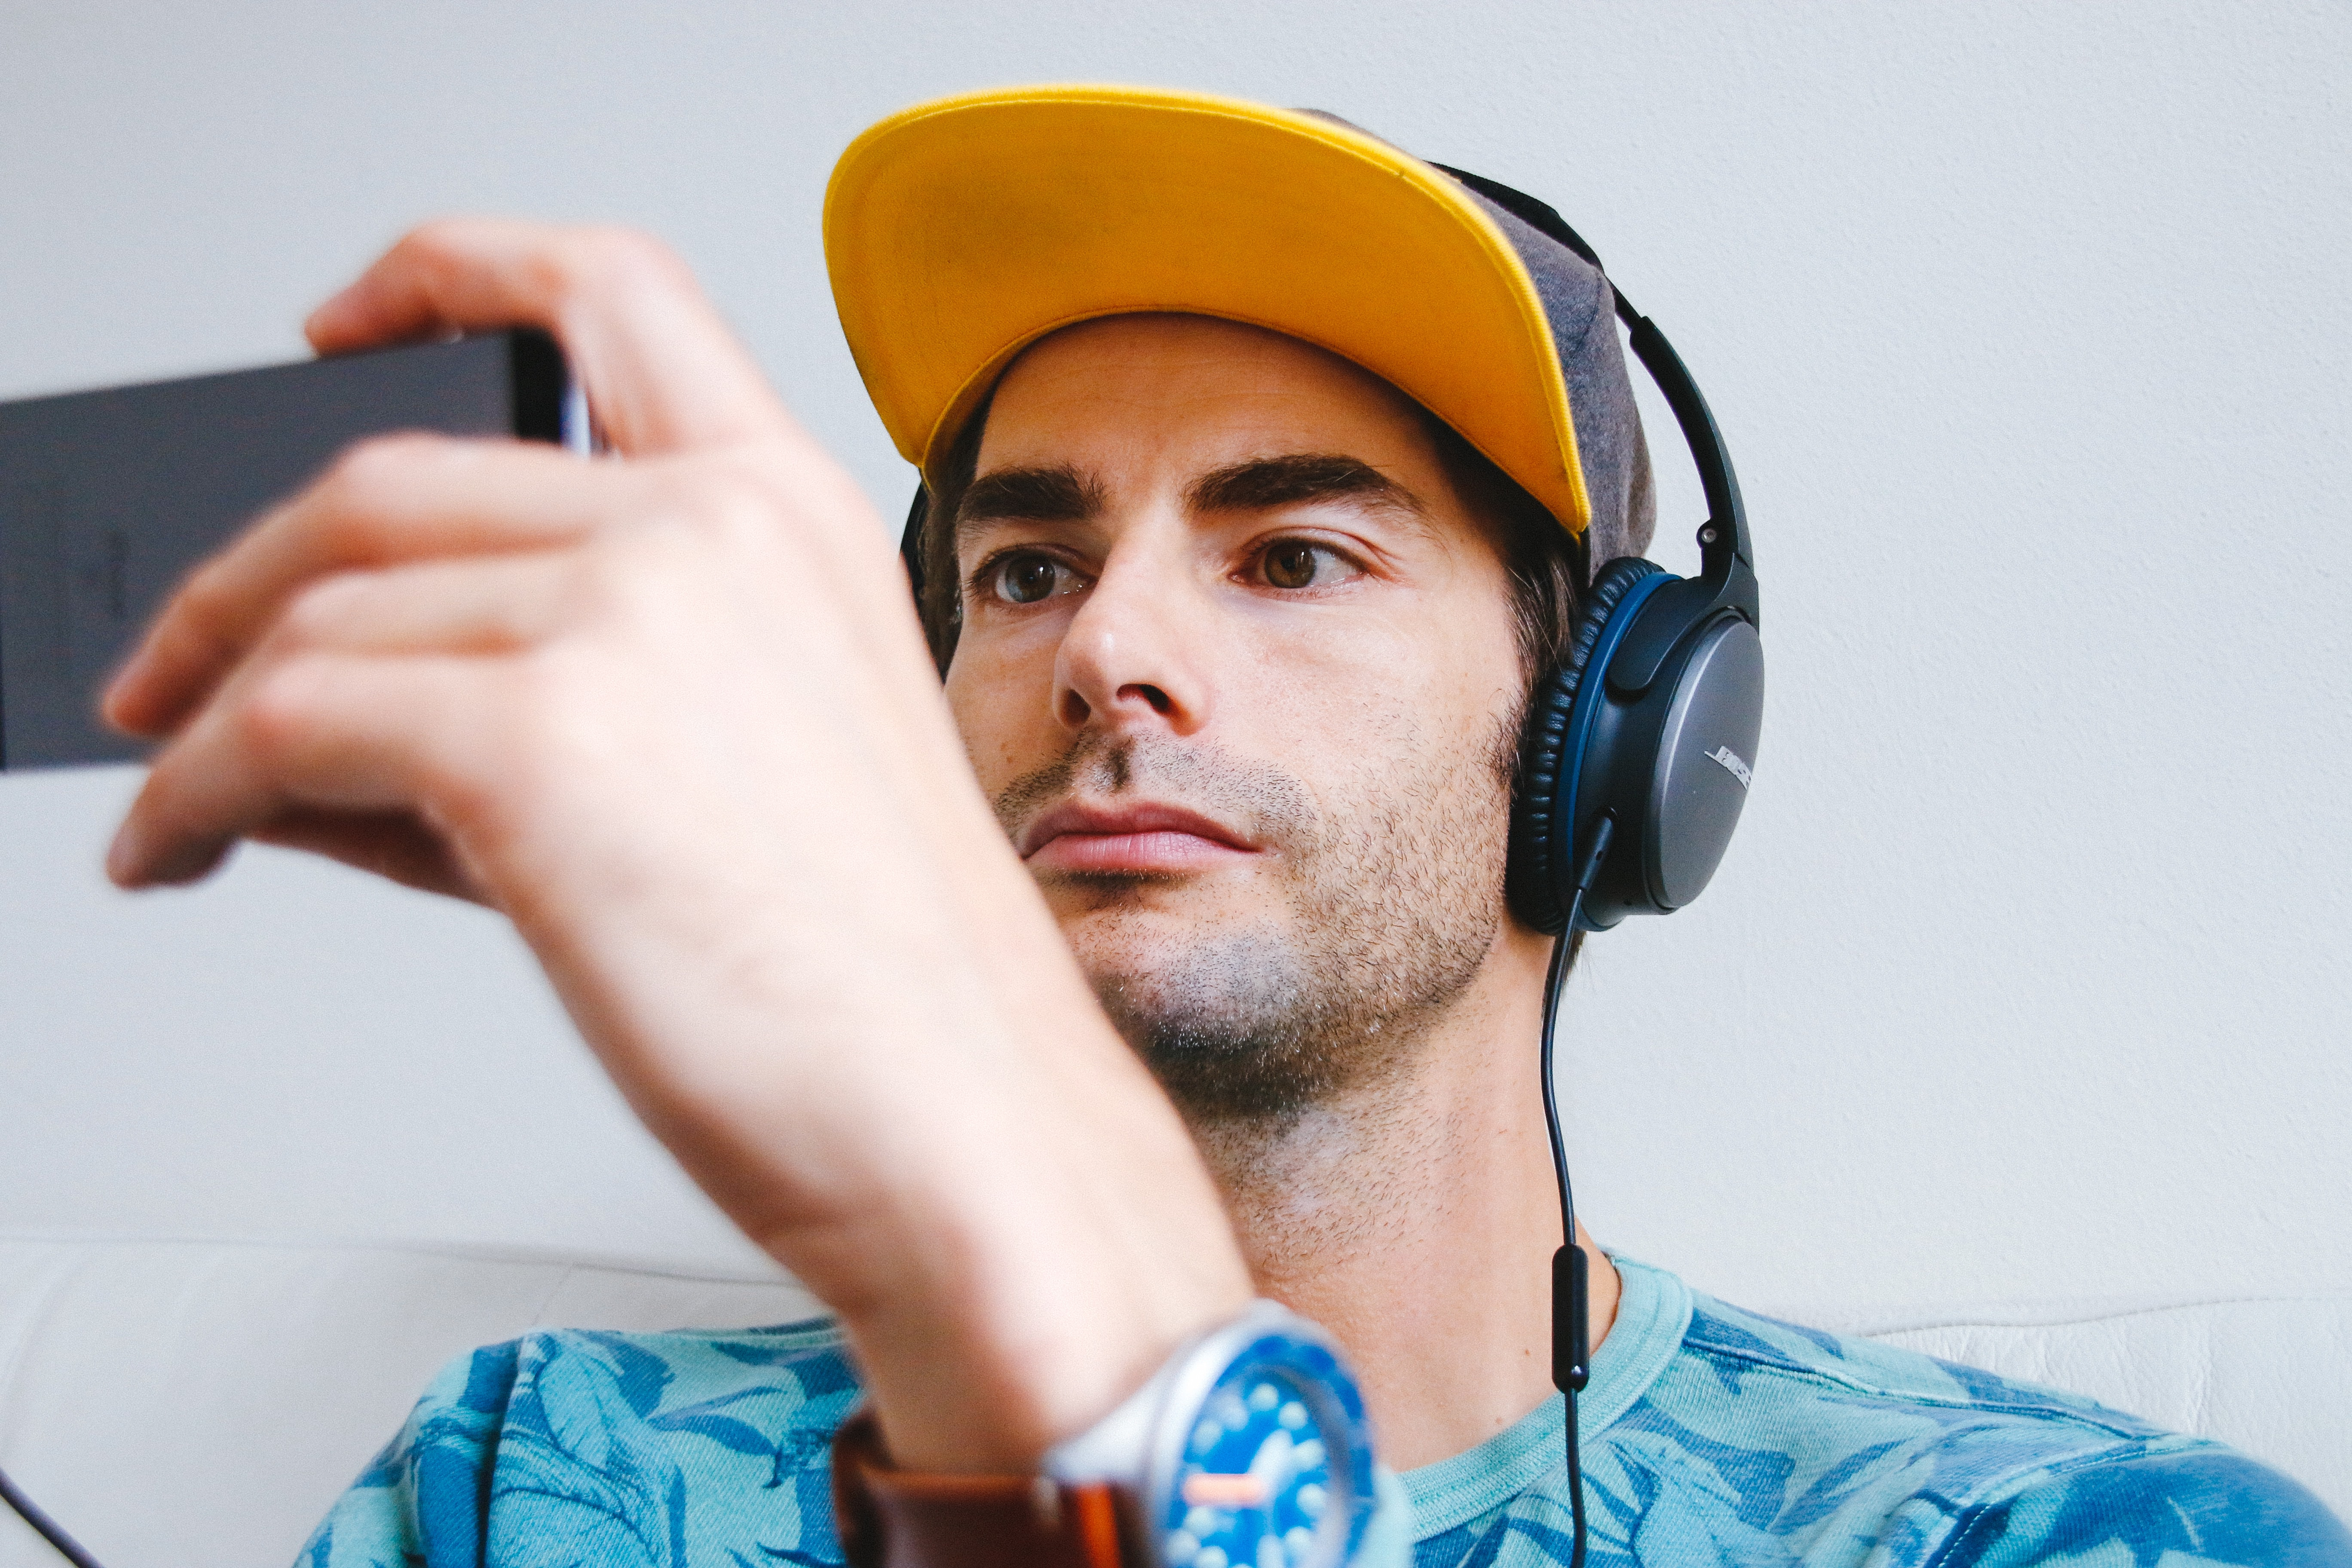 man wearing black corded headphones while holding phone